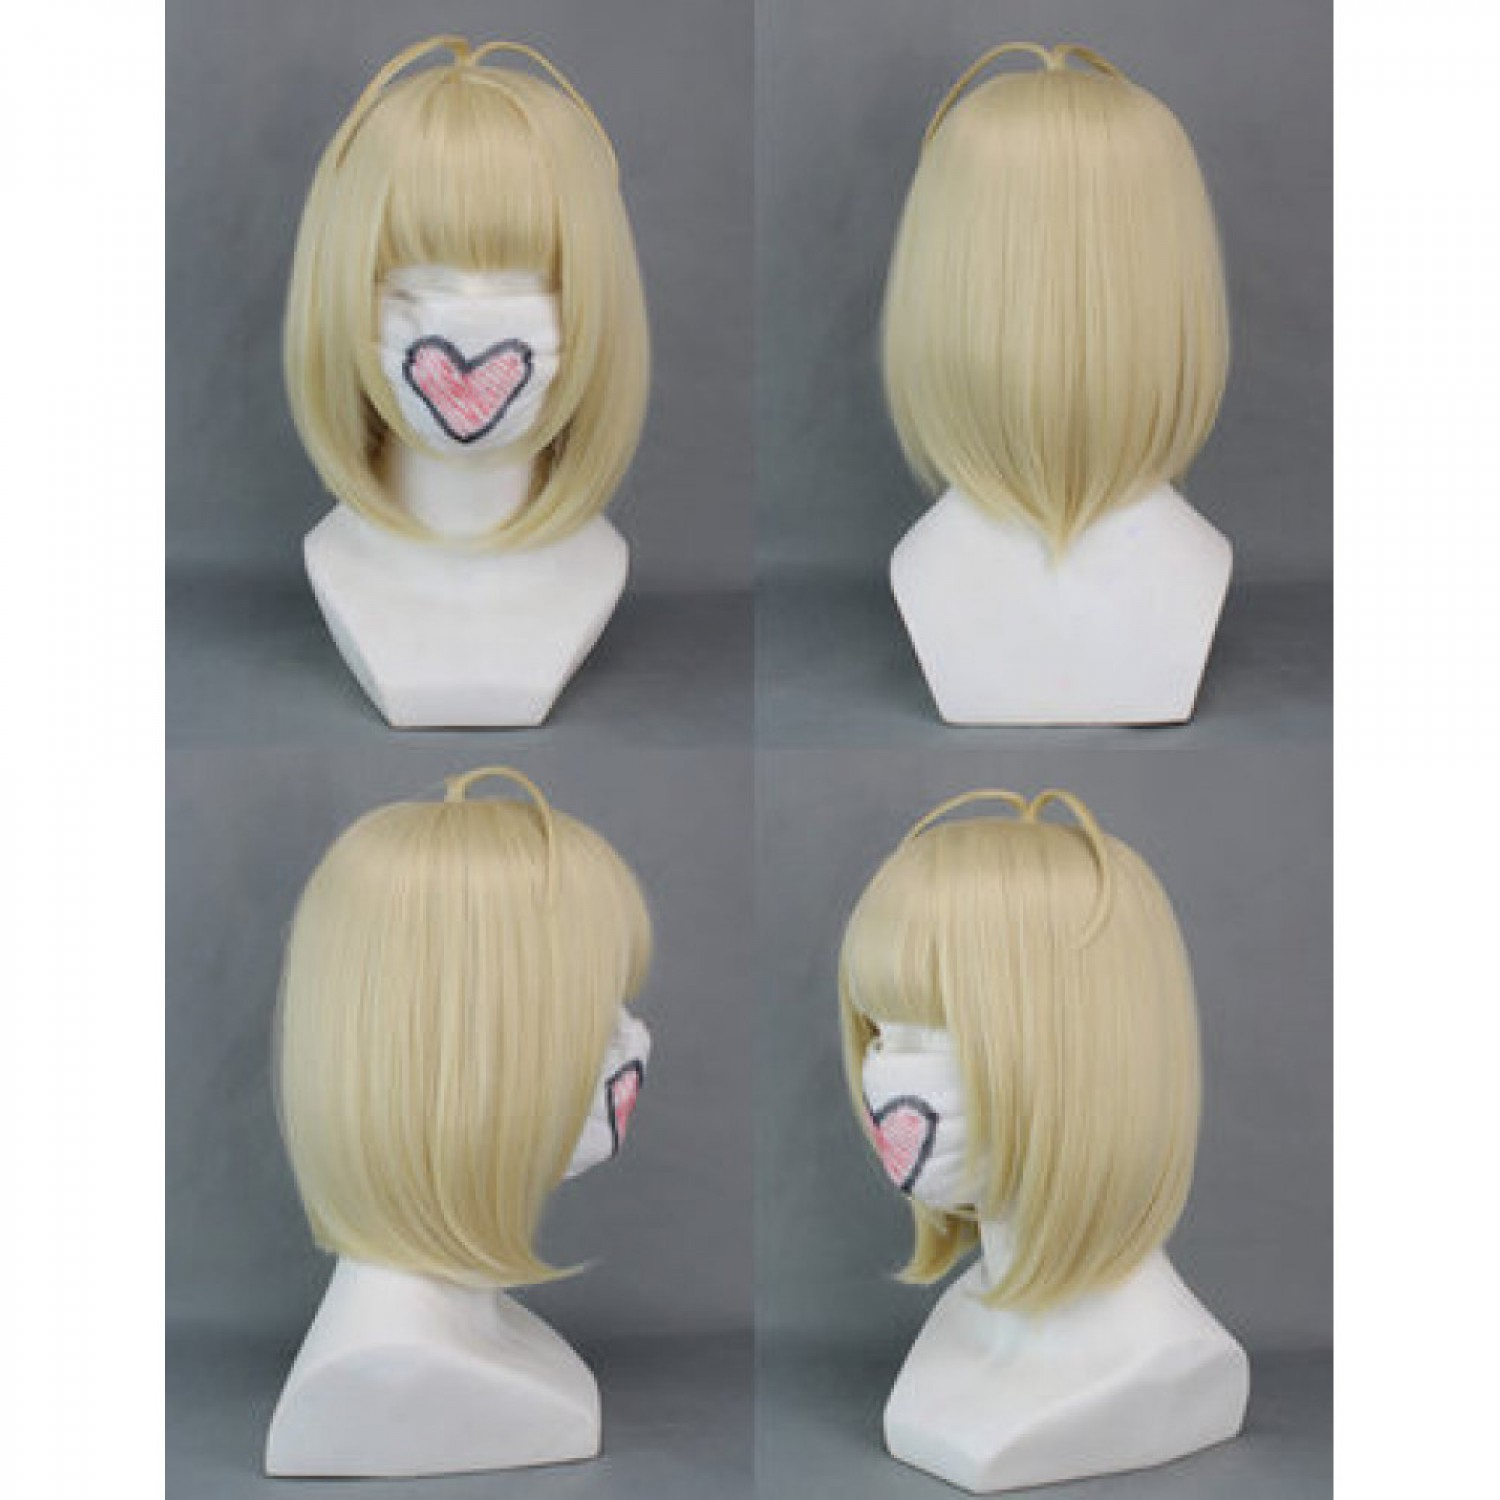 Ao no Exorcist Blue Exorcist Moriyama Shiemi Short Blonde Cosplay Wig